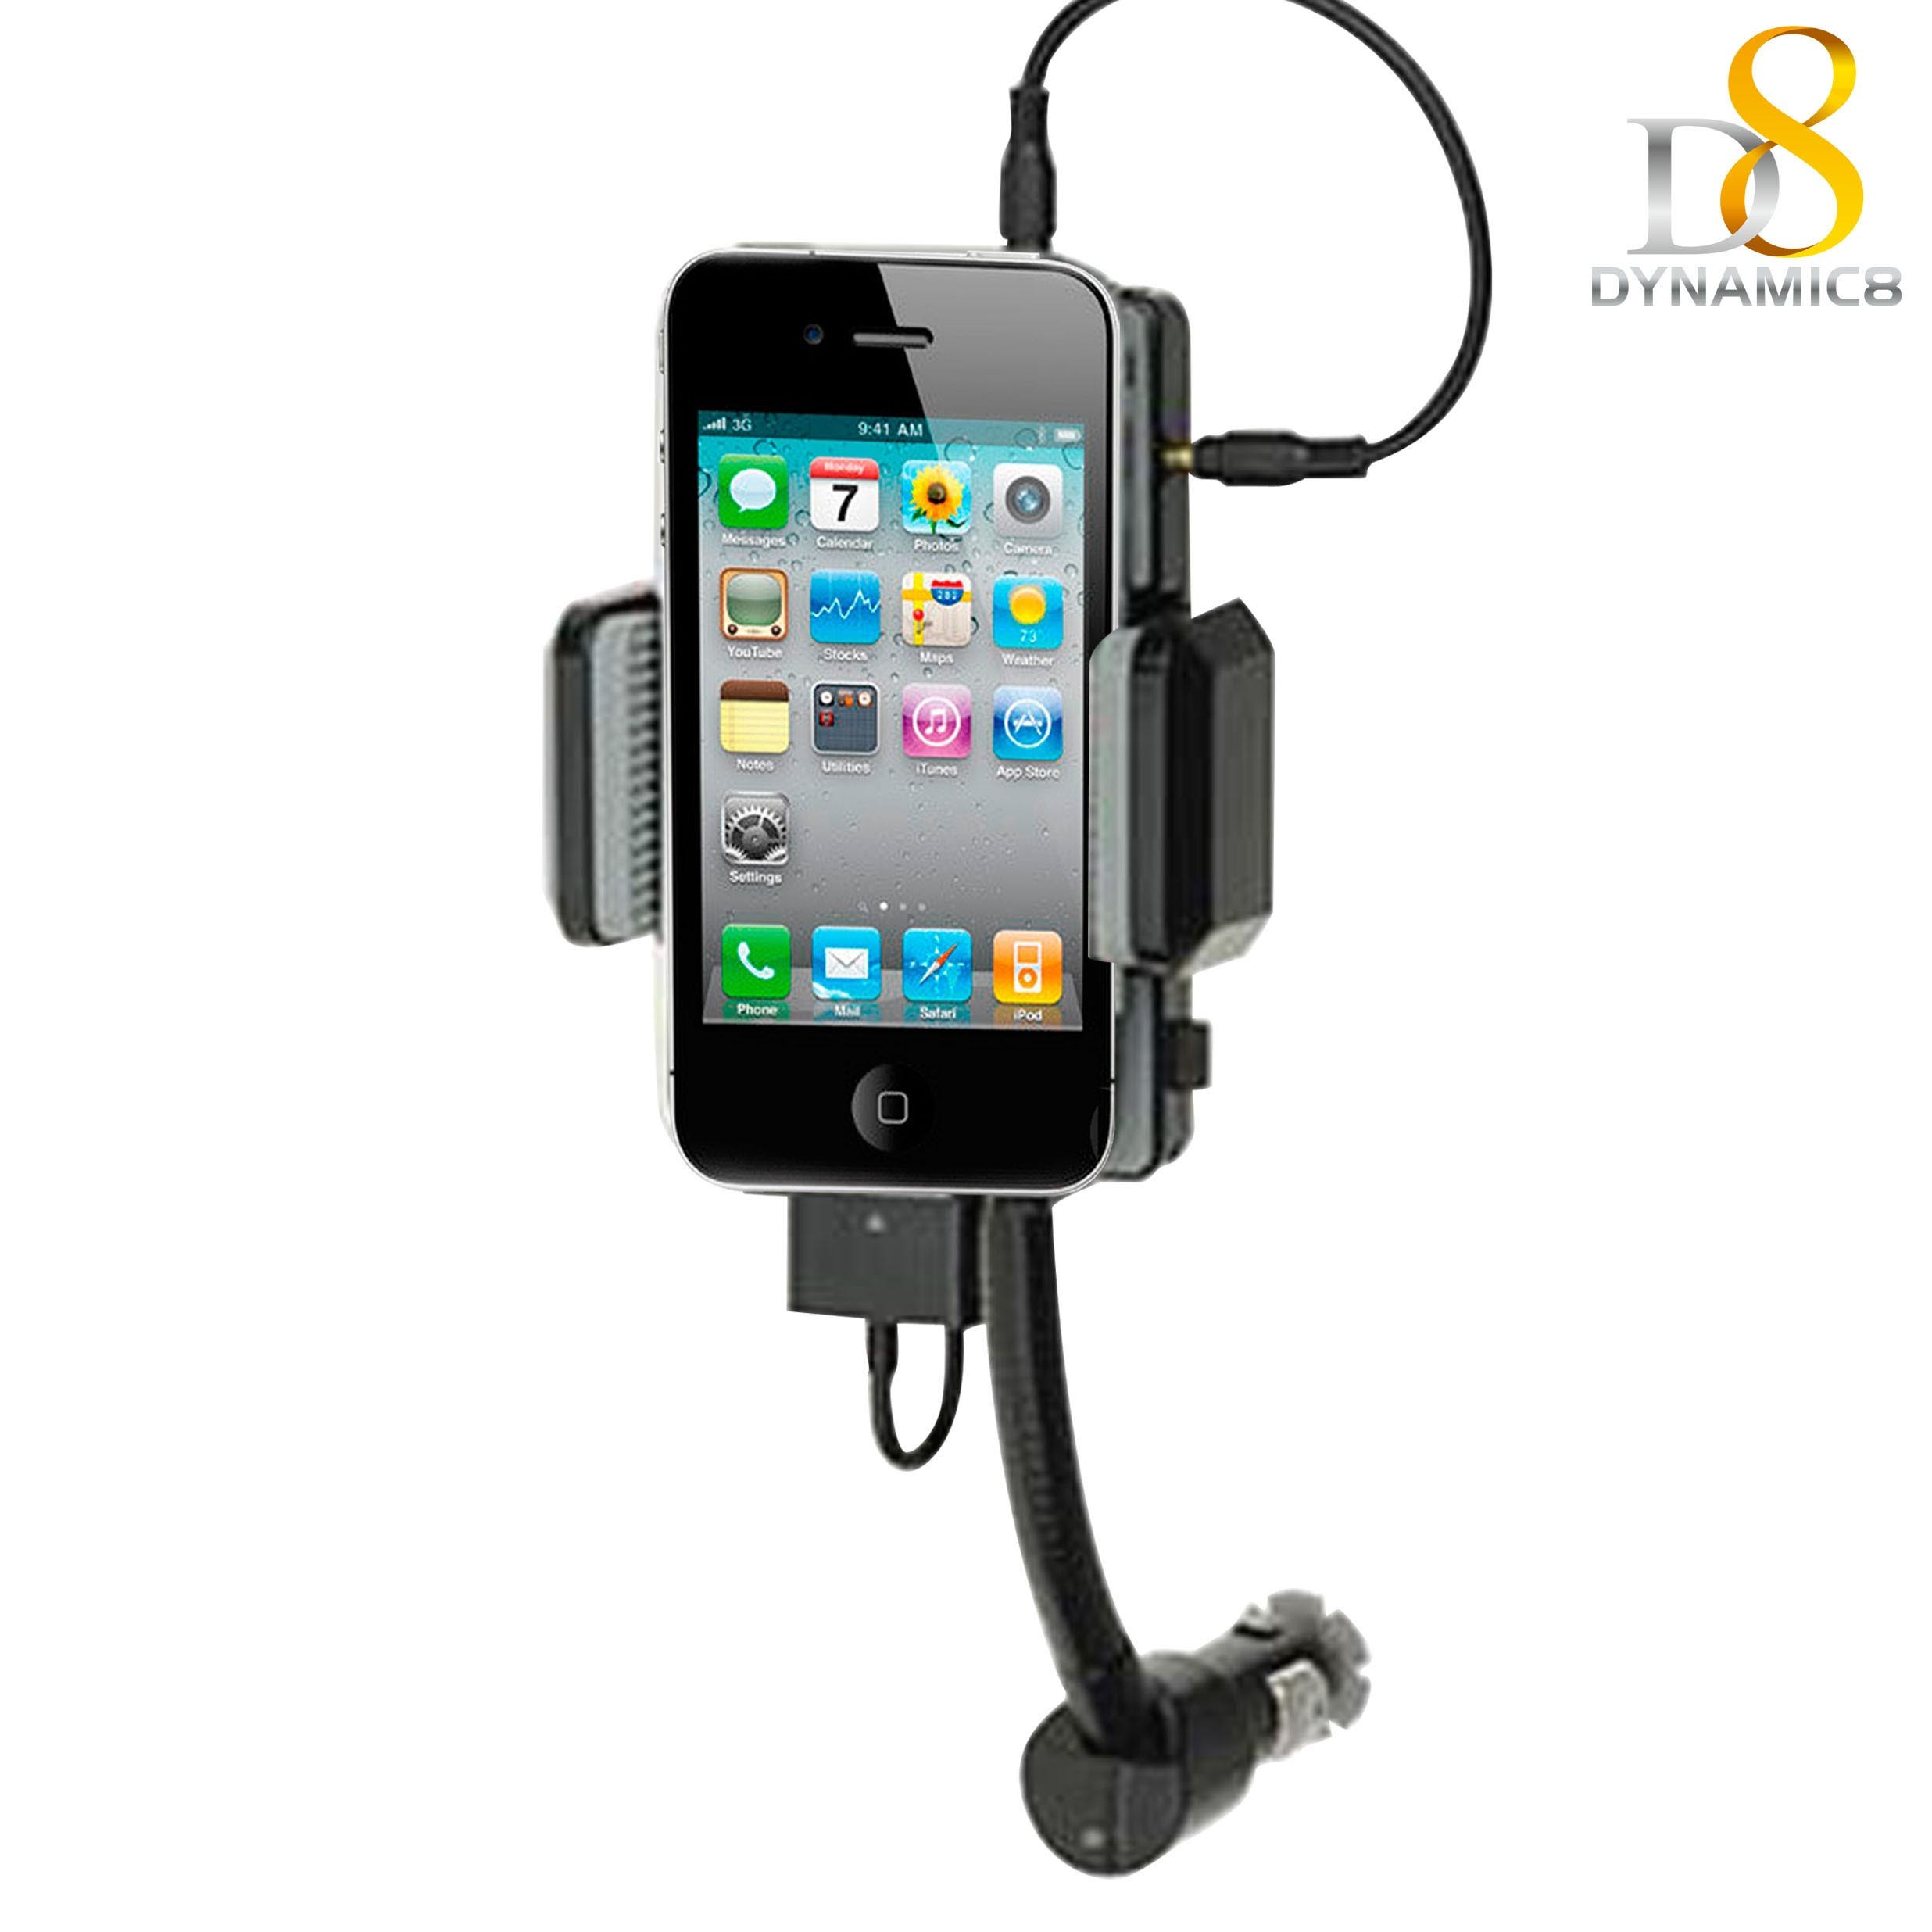 China Handsfree Fm Transmitter Kit For Iphone4 Dynamic8 868a Mobile Phones Car Tranmitter